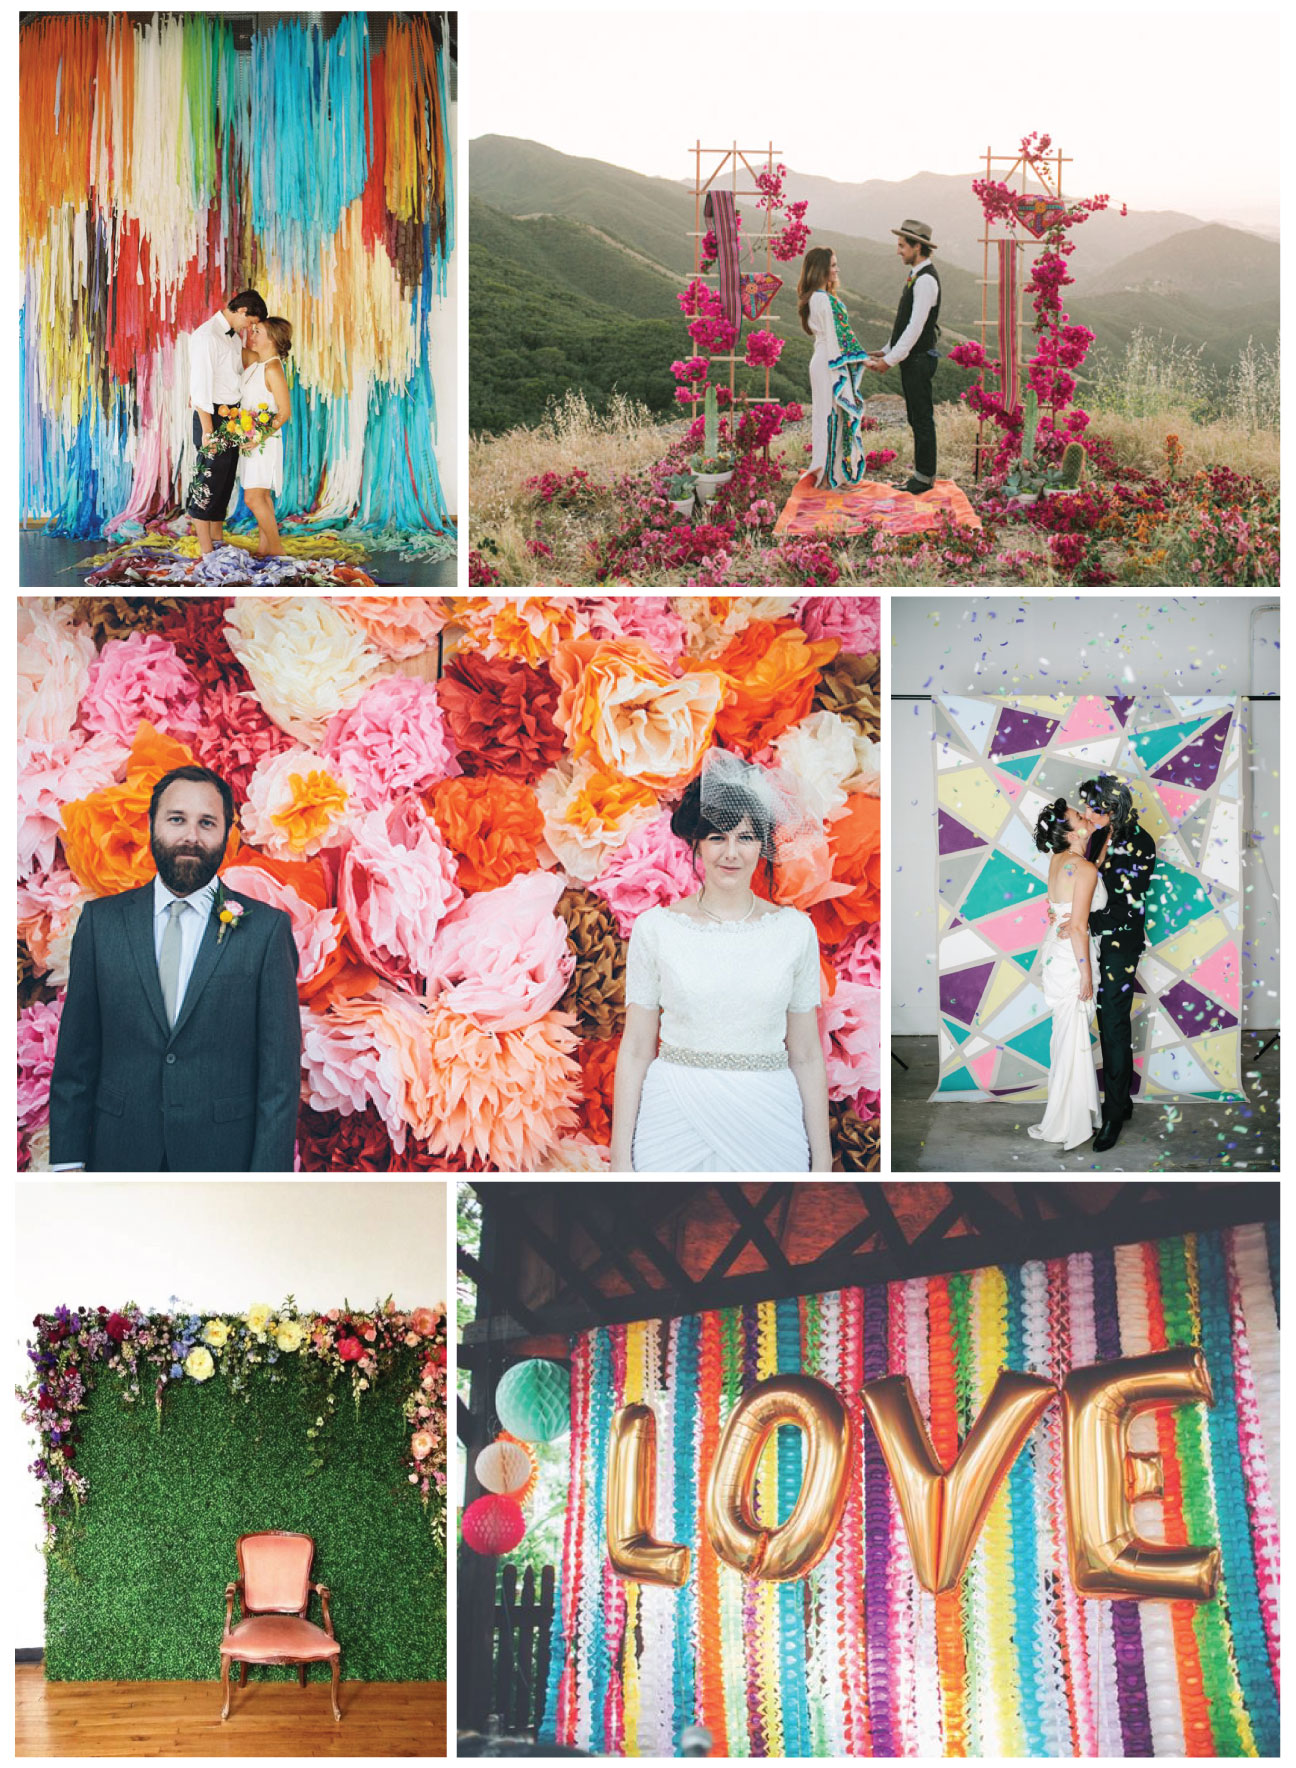 Photo by Ben Q. Photography, Backdrop by The Color Condition / Photo by Farhad Samari / Photo by Caleb John Hill , Via 100 Layer Cake / Photo by Alison Andres Photography / Design by Sullivan Owen / Photo by Papered Heart Photography, Design by Ashton Events